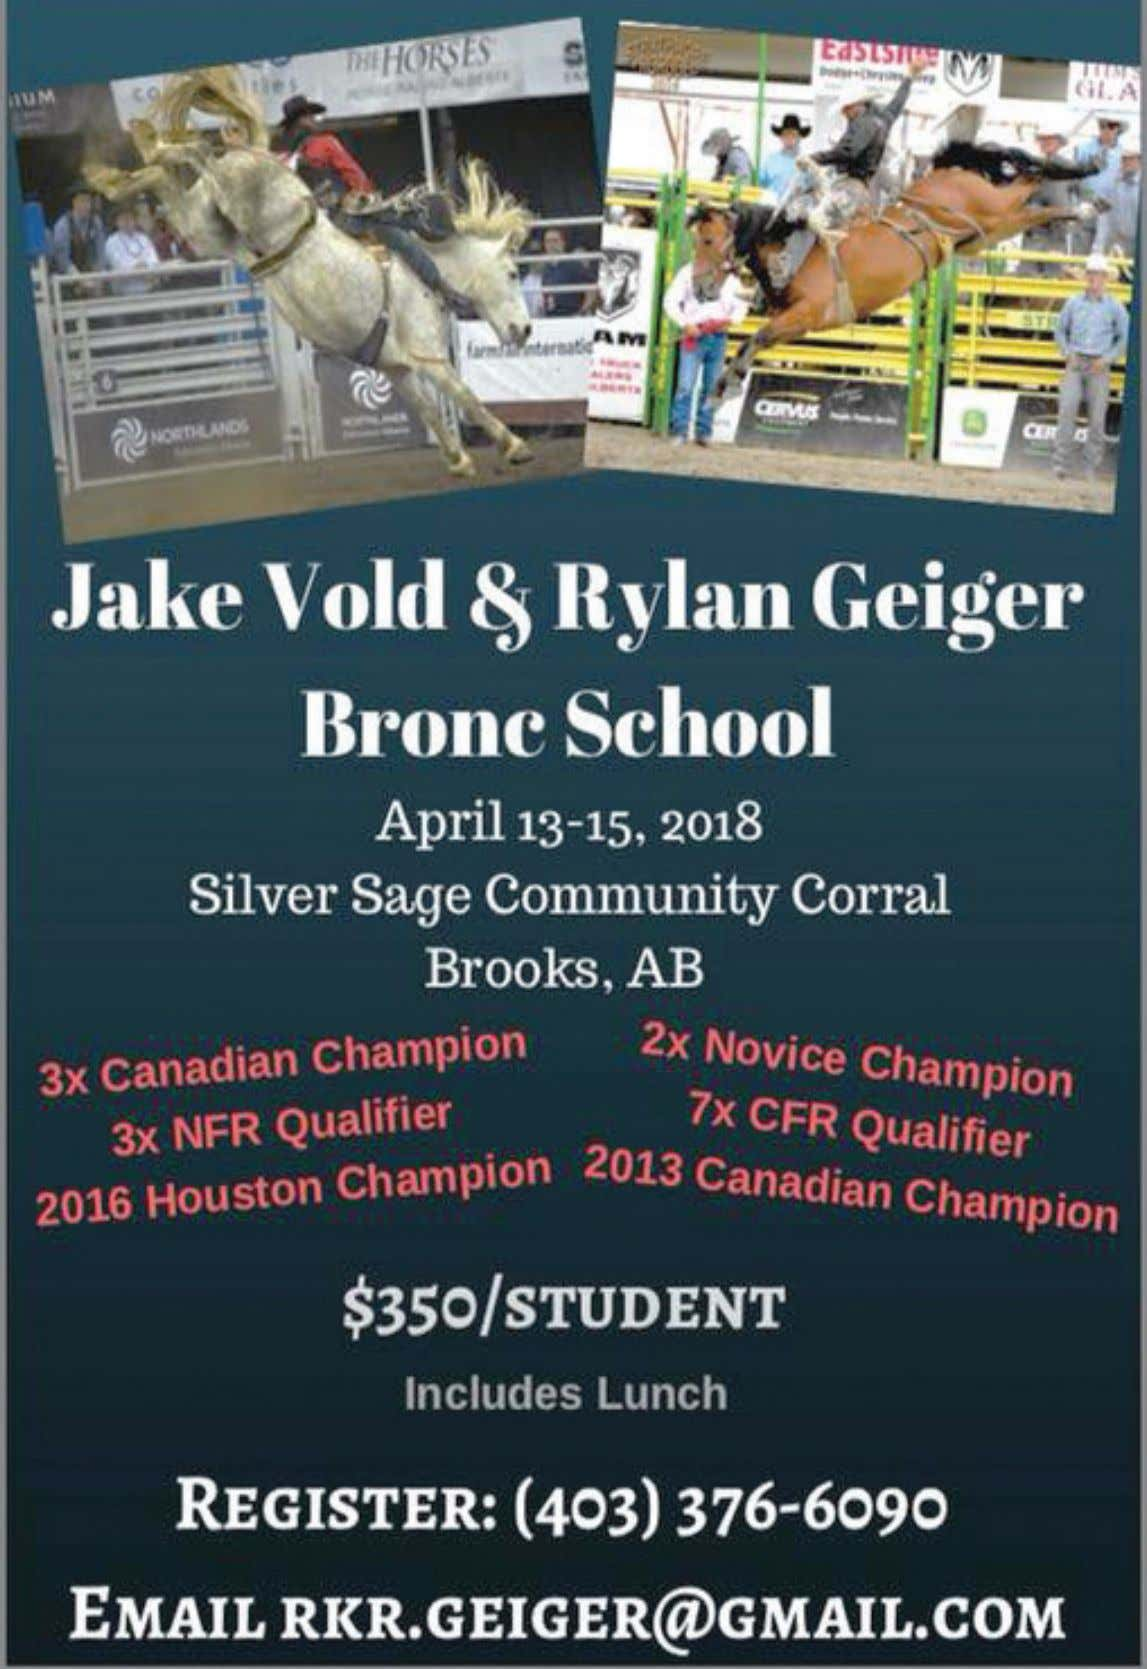 CCA RODEO NEWS MARCH 2018 - PAGE 9